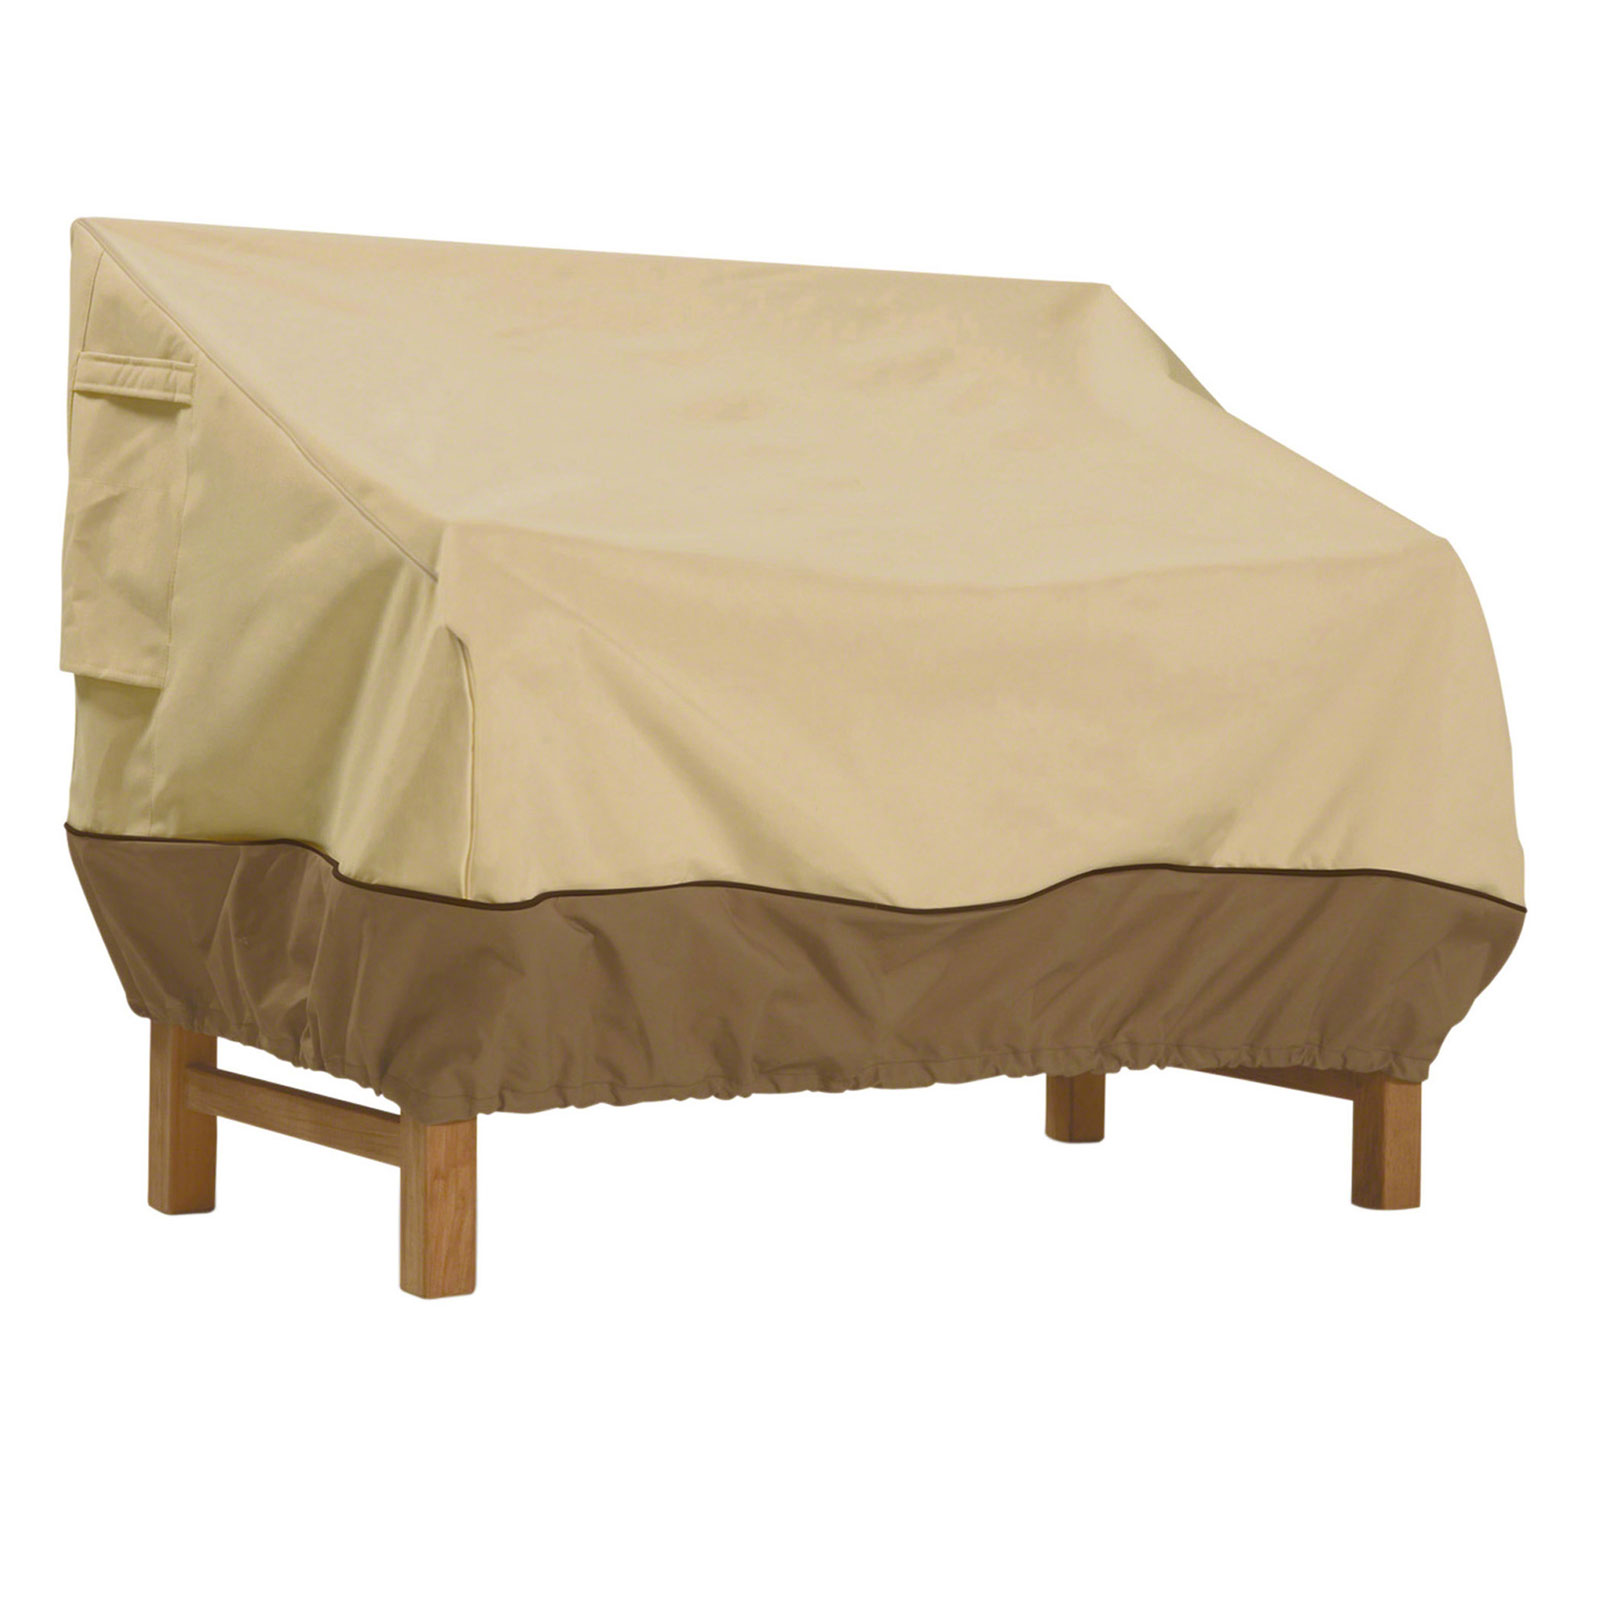 Patio Loveseat Cover in Patio Furniture Covers